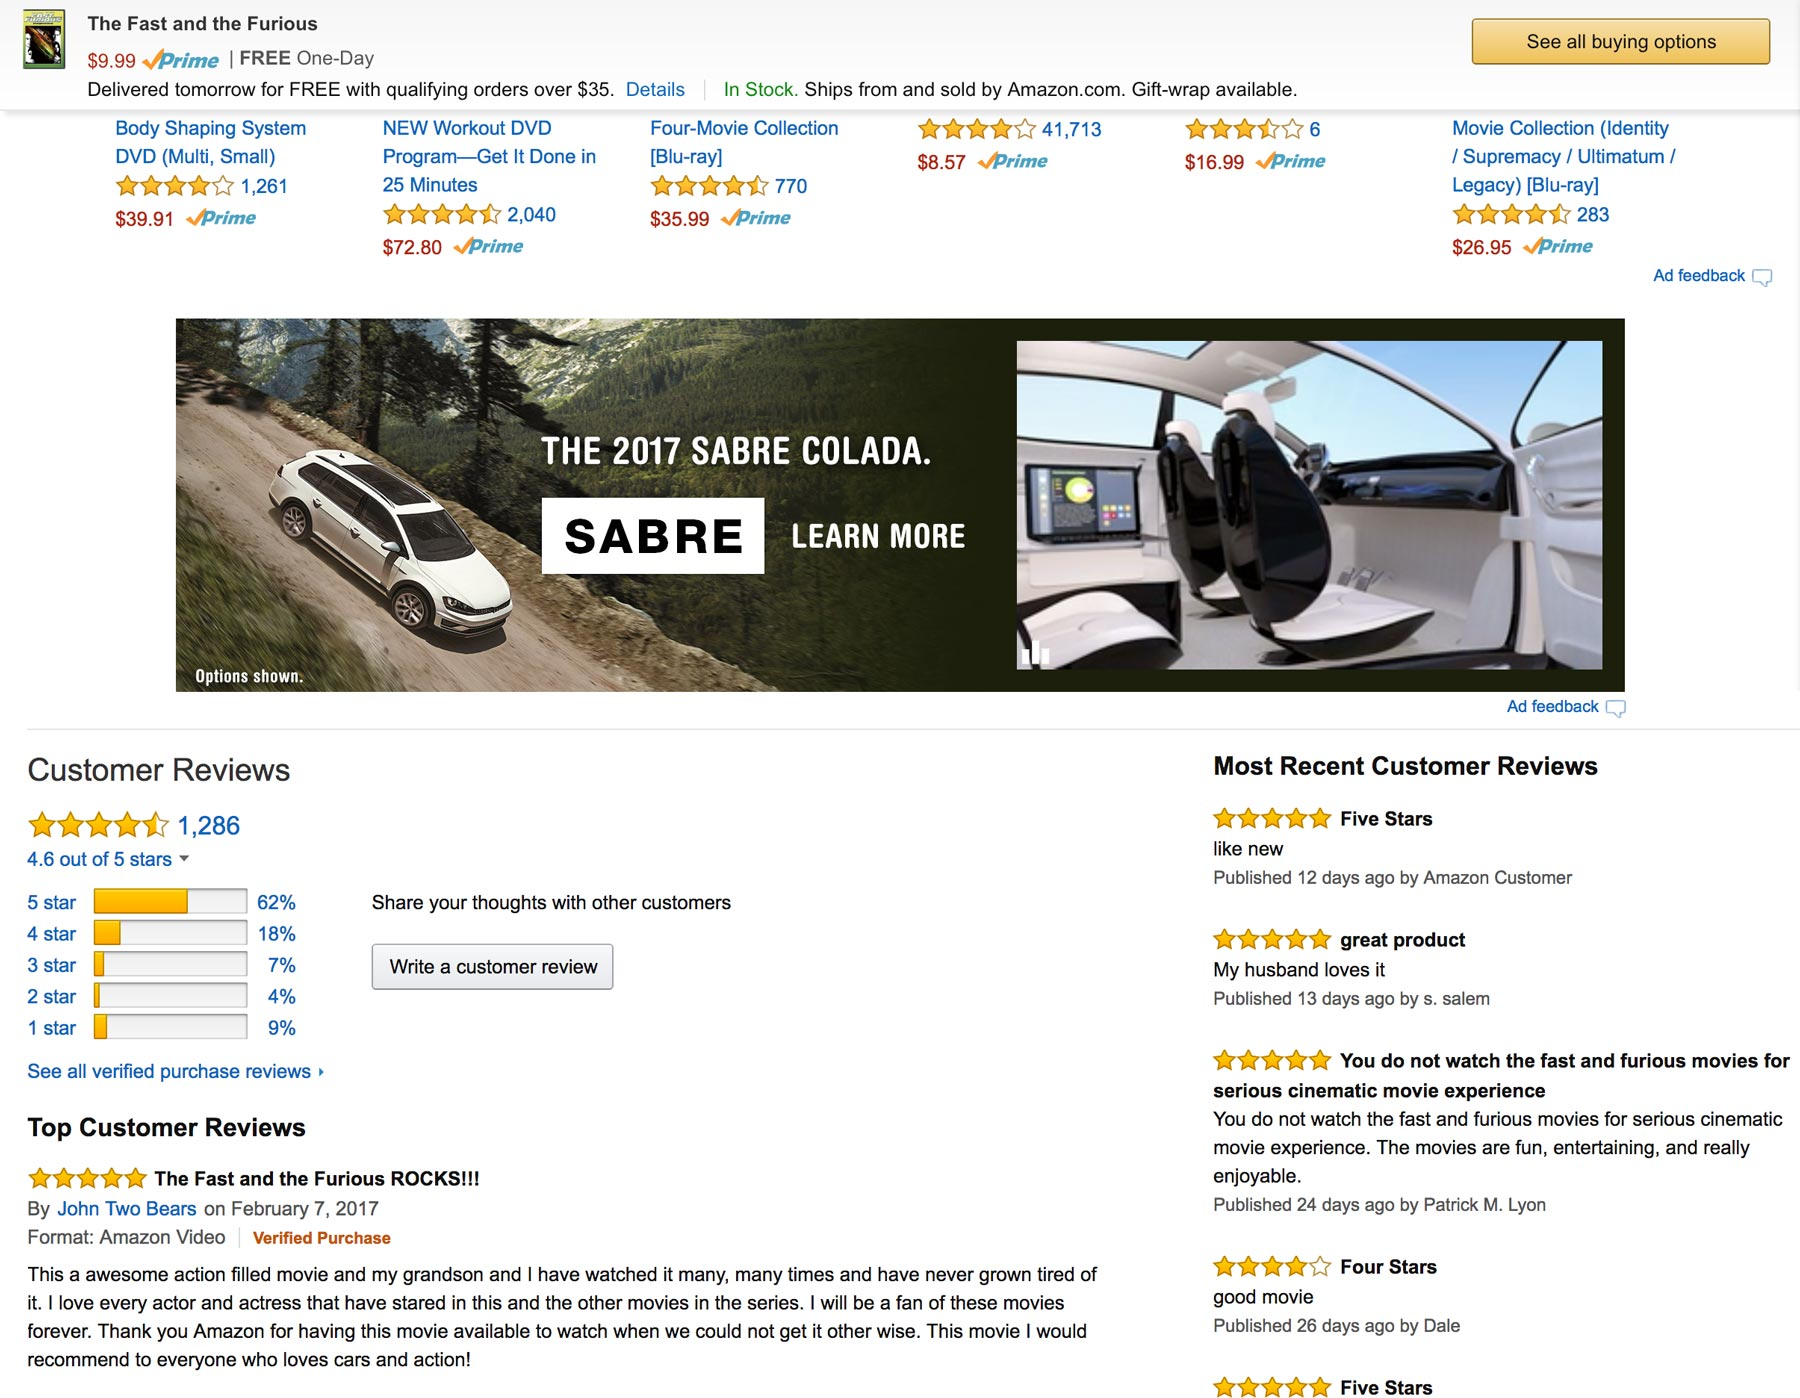 Amazon Video Ad on a product detail page